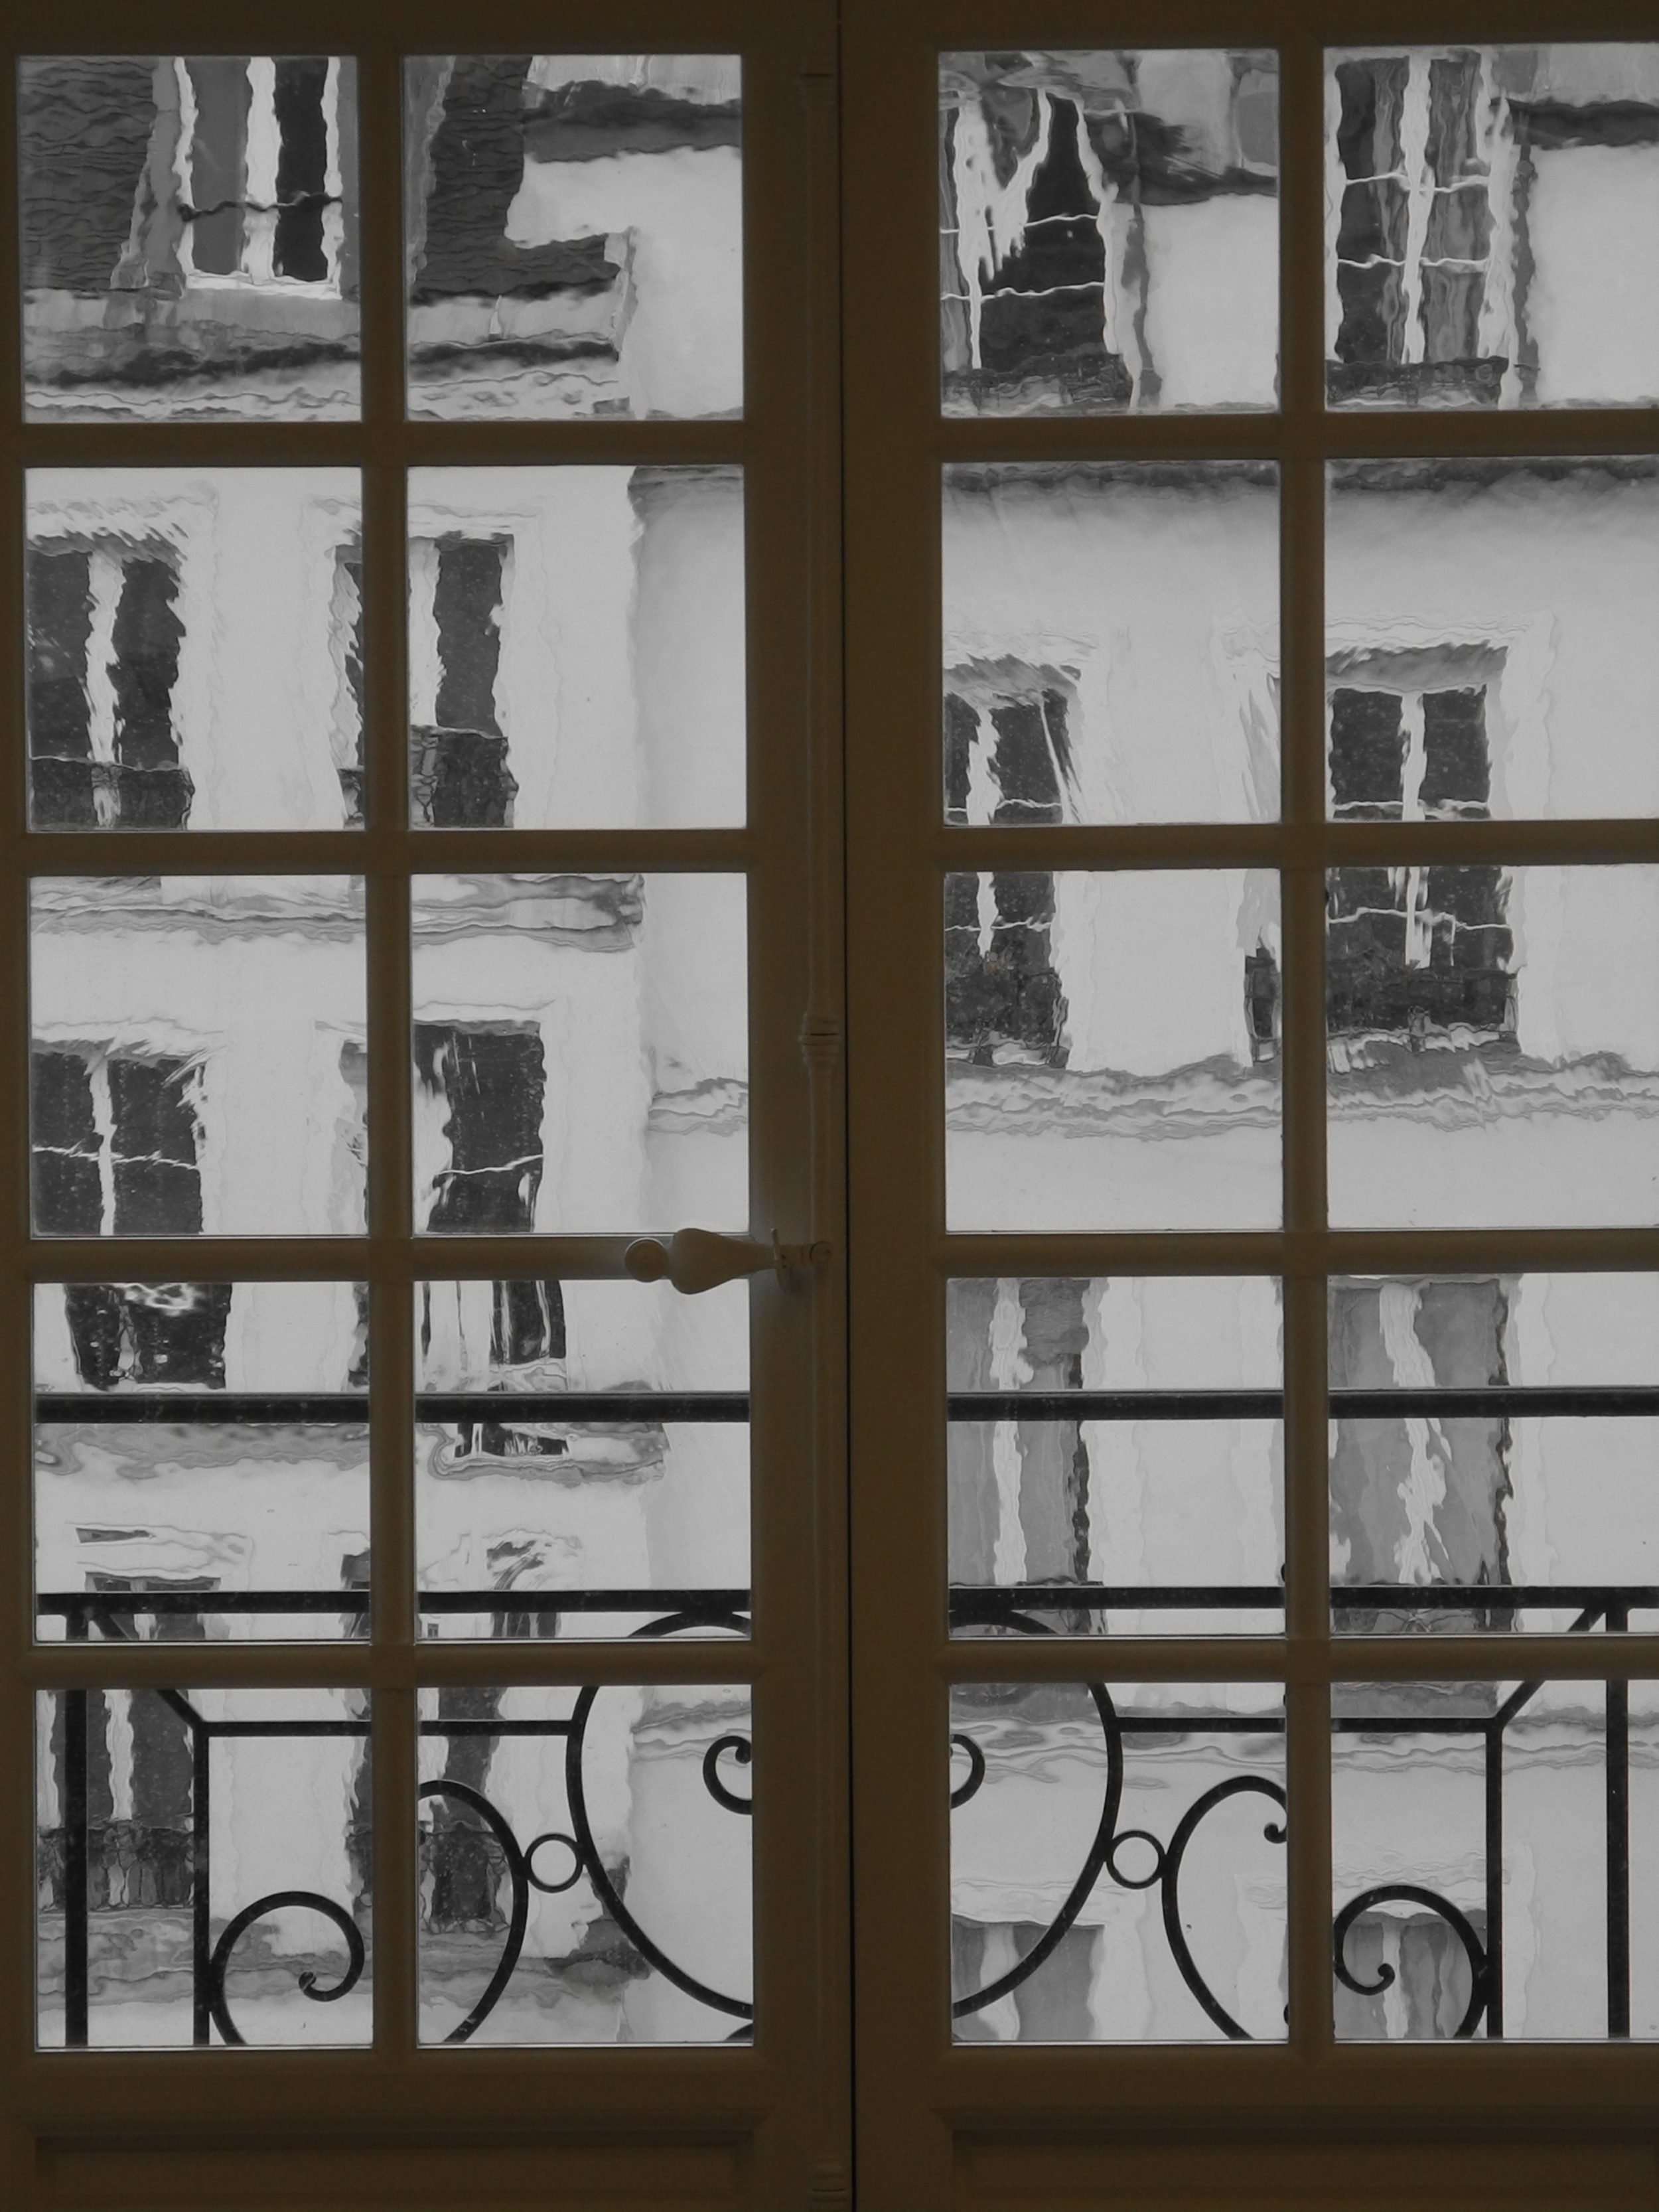 A view into the garden from the wavy glass of the Mansion's antique windows.